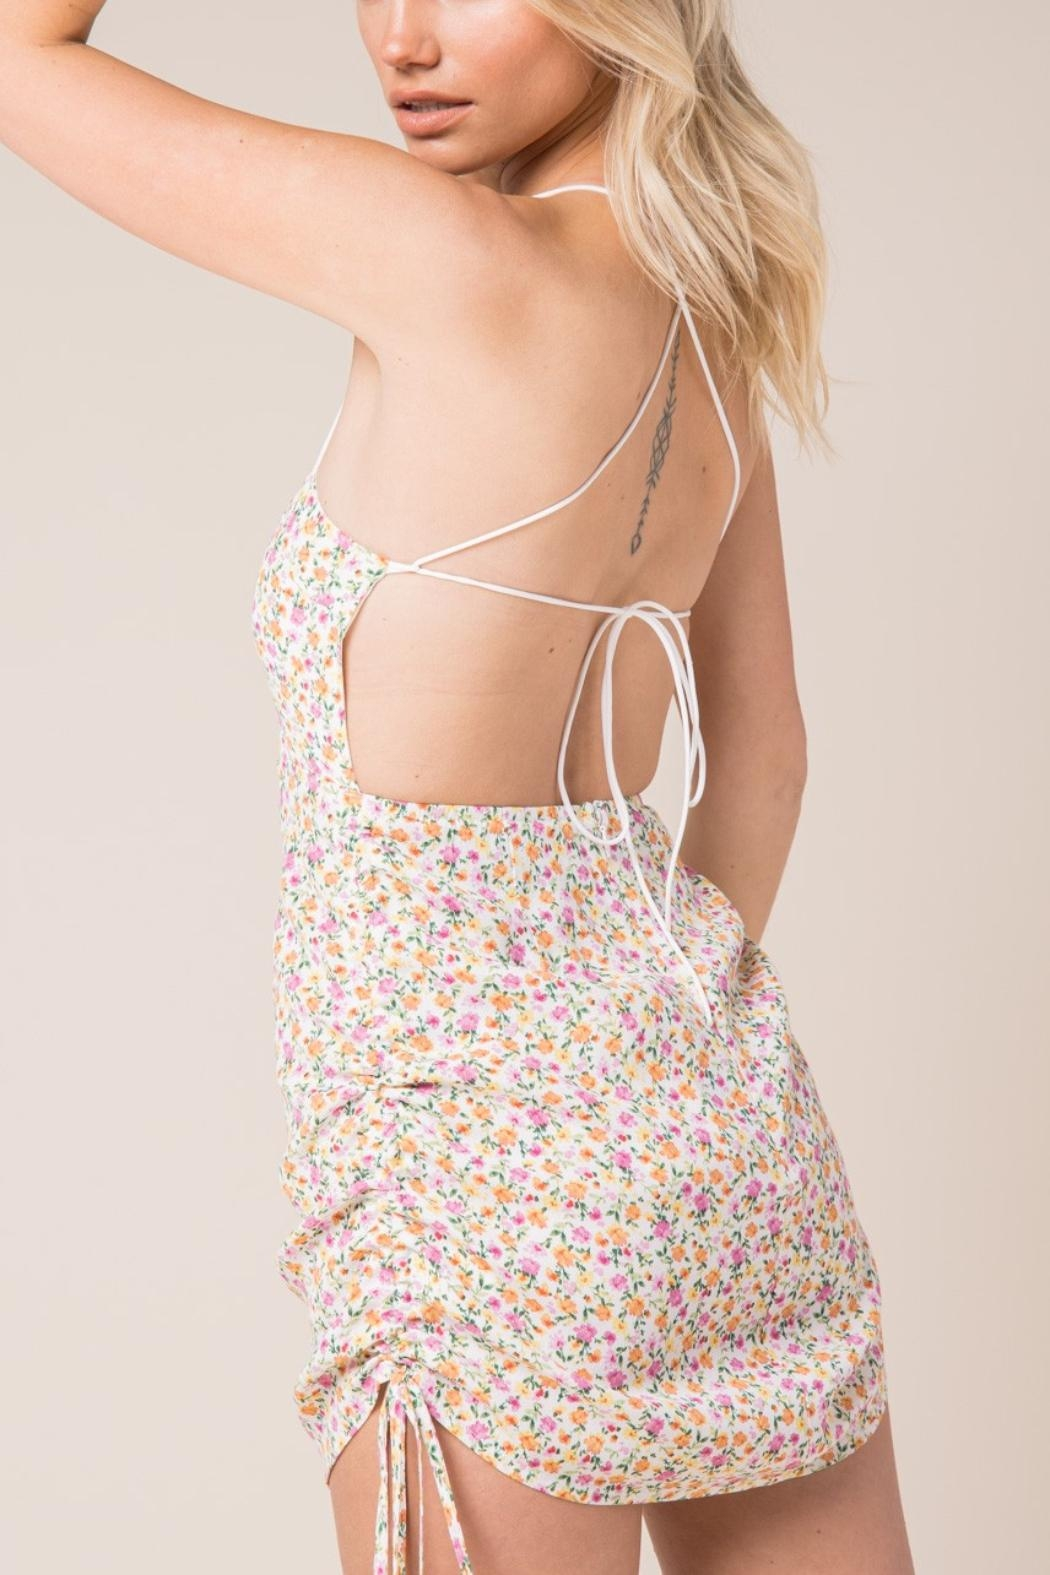 Pretty Little Things Backless Floral Dress - Main Image